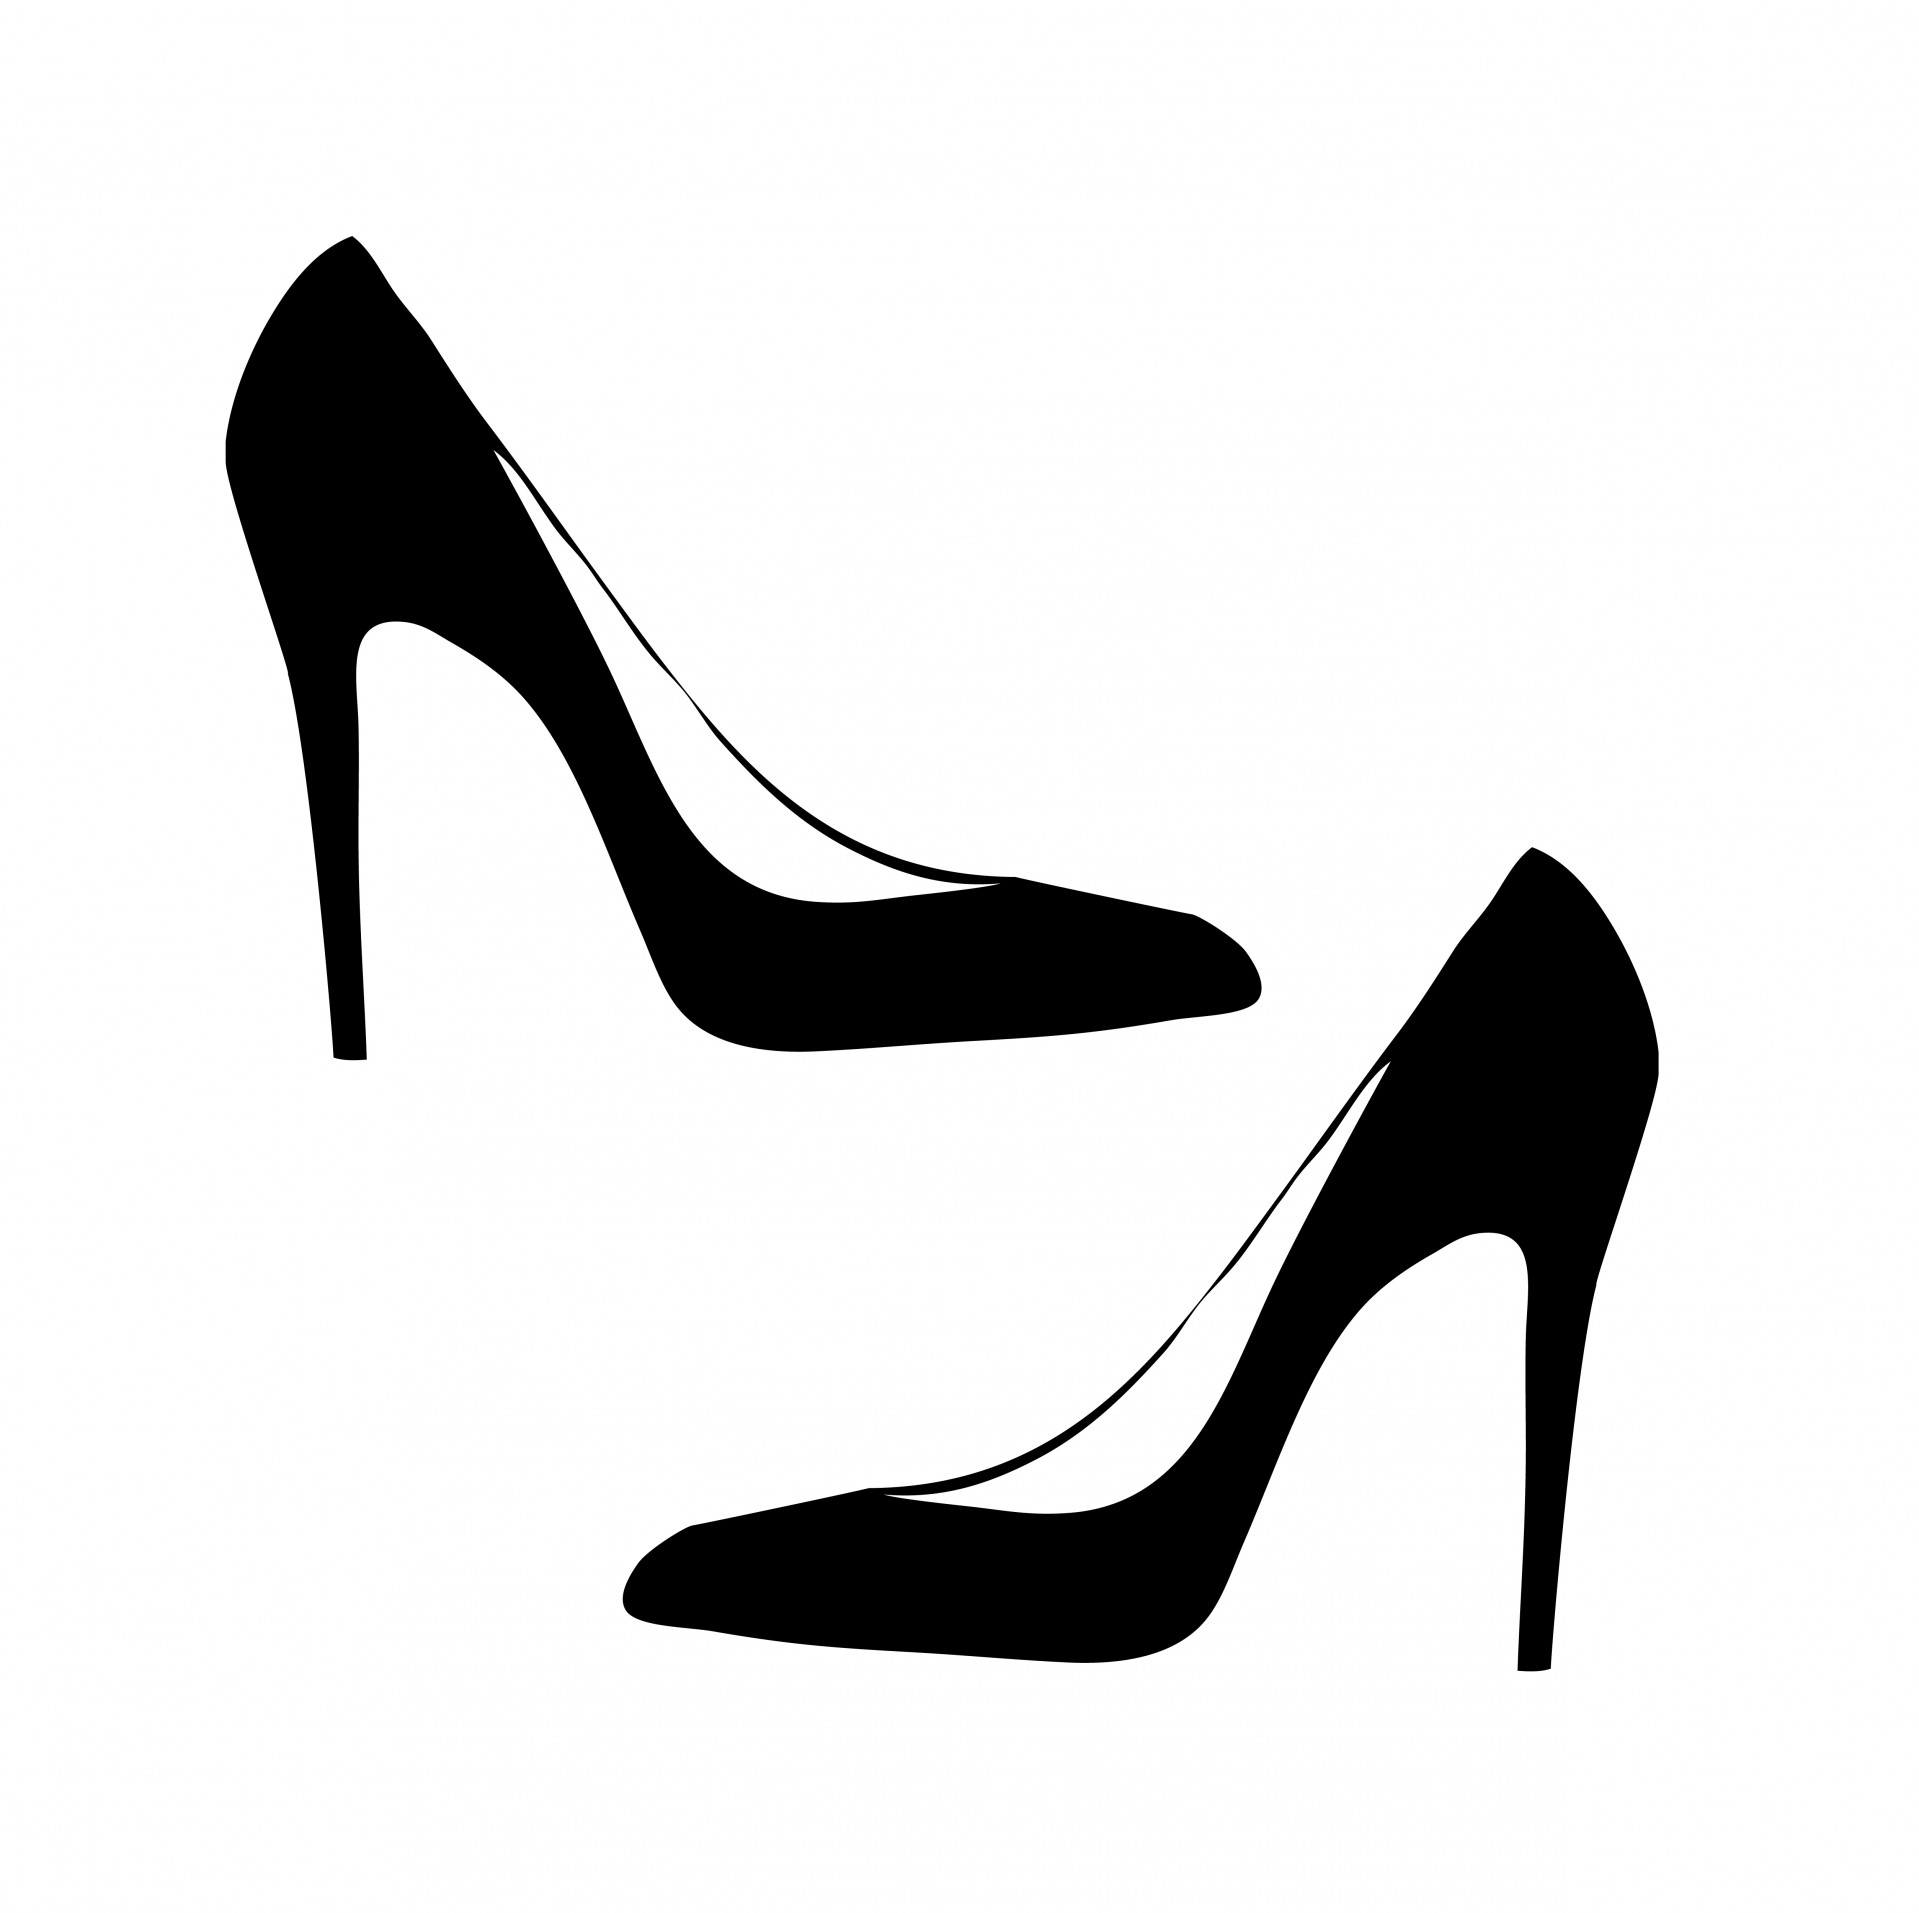 98+ Women Shoes Clipart.